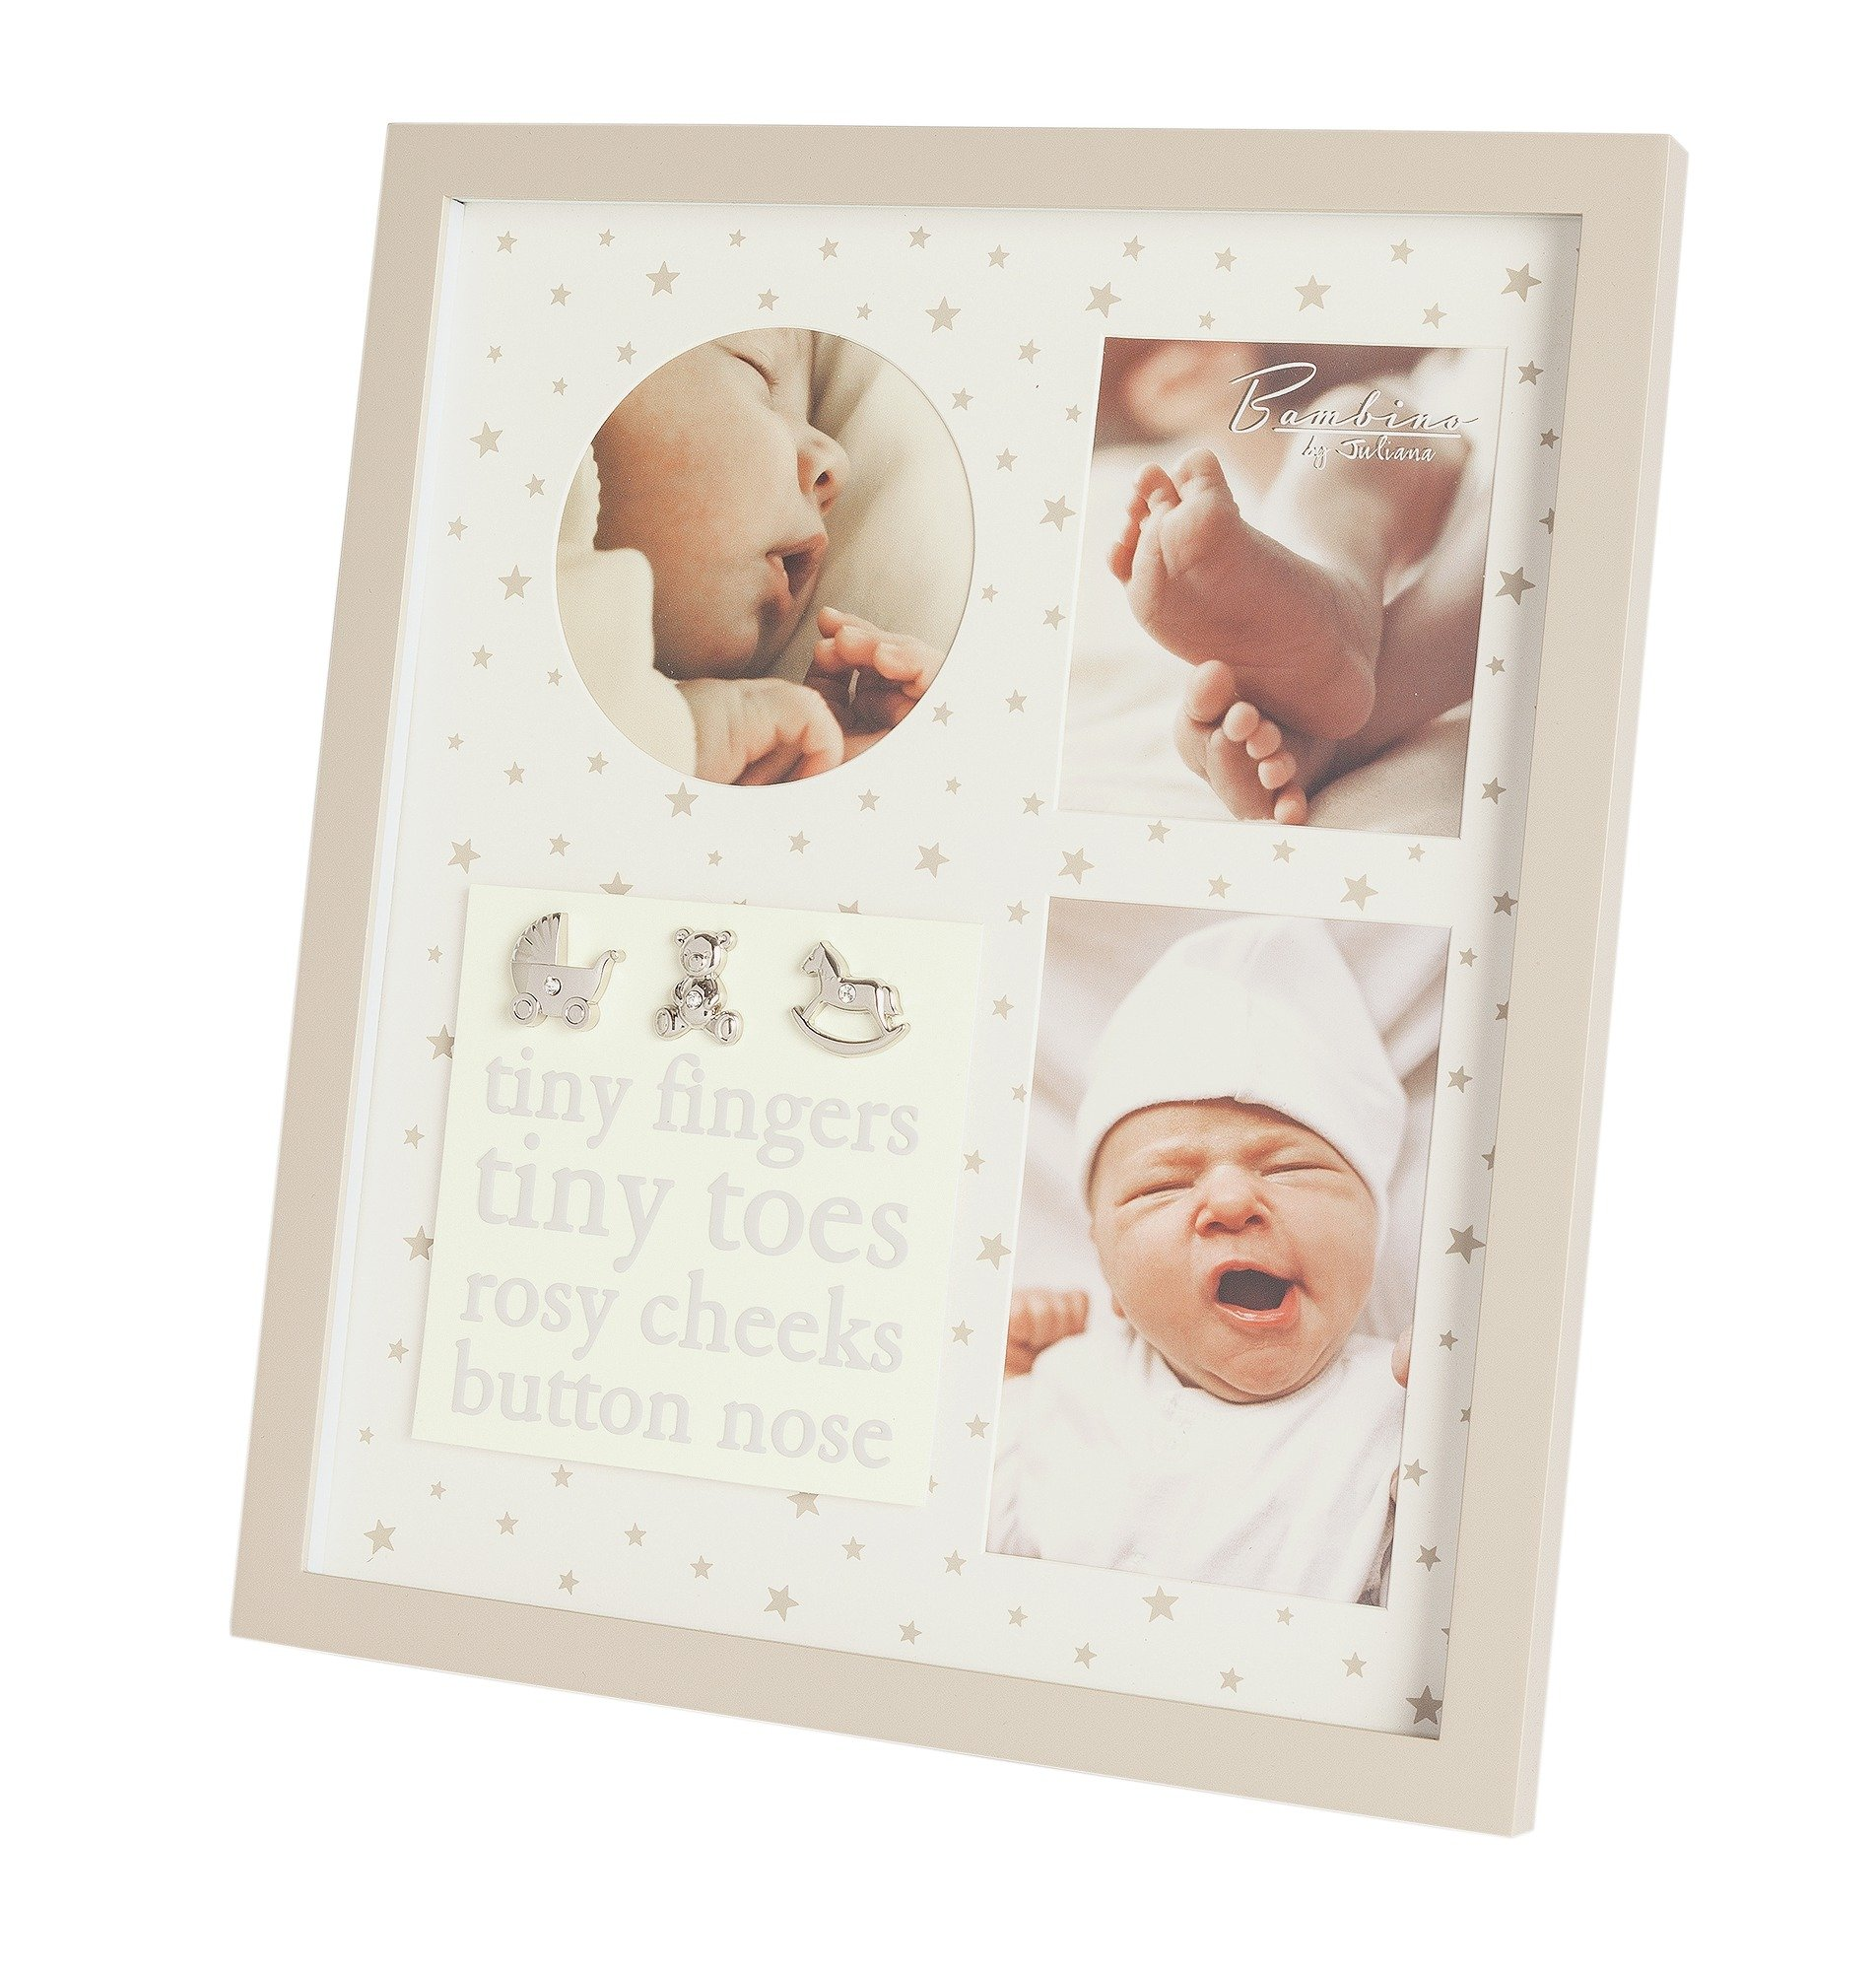 Image of Bambino Tiny Fingers Collage Frame